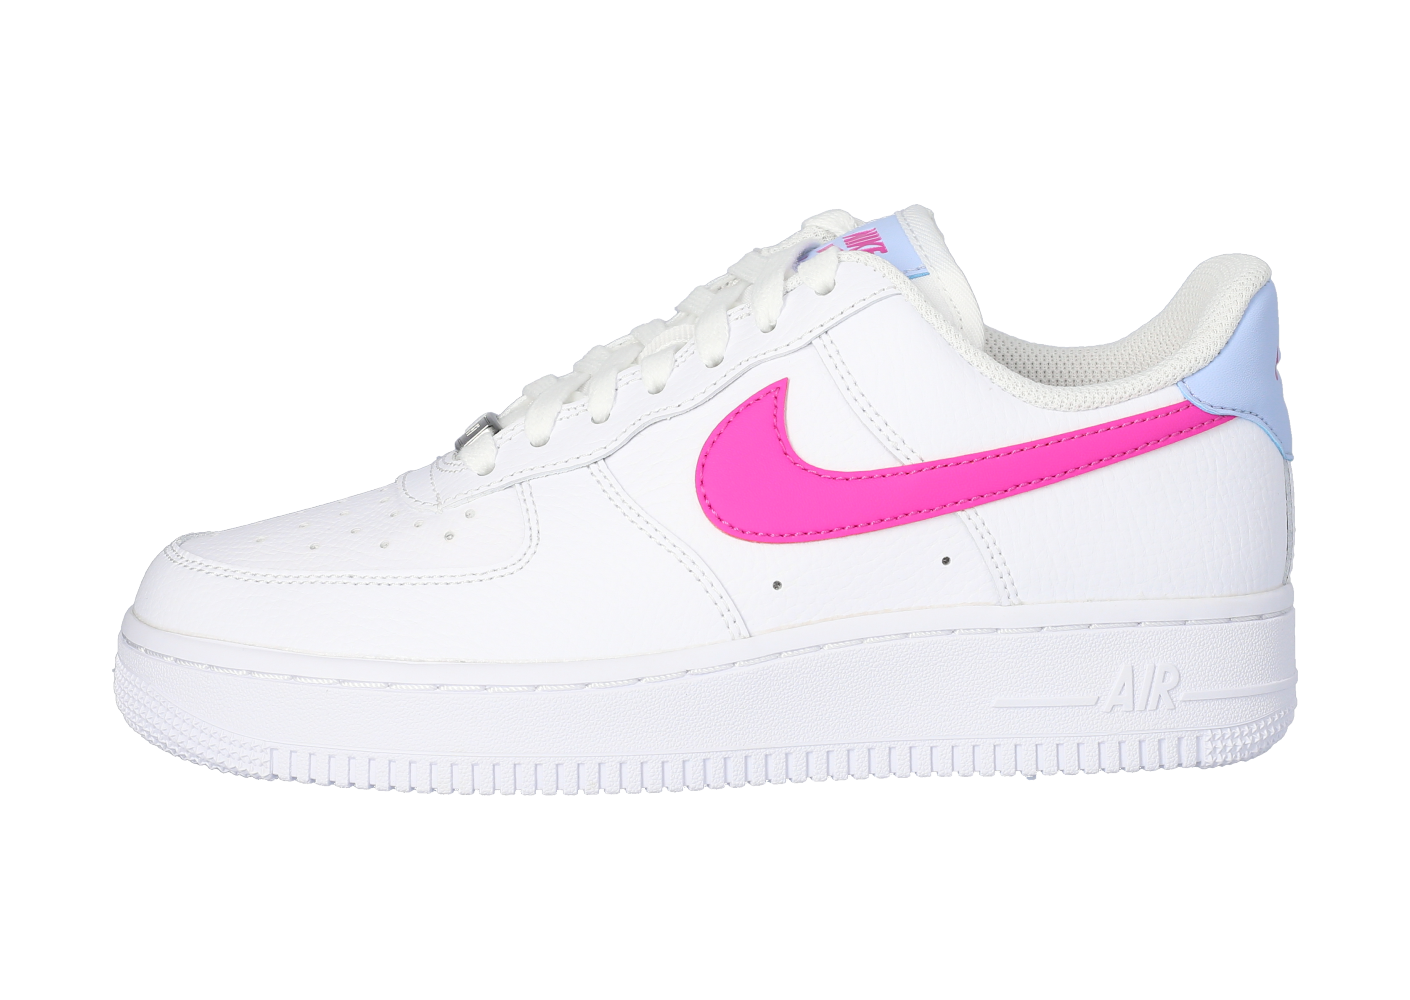 air force 1 femme blanche et rose